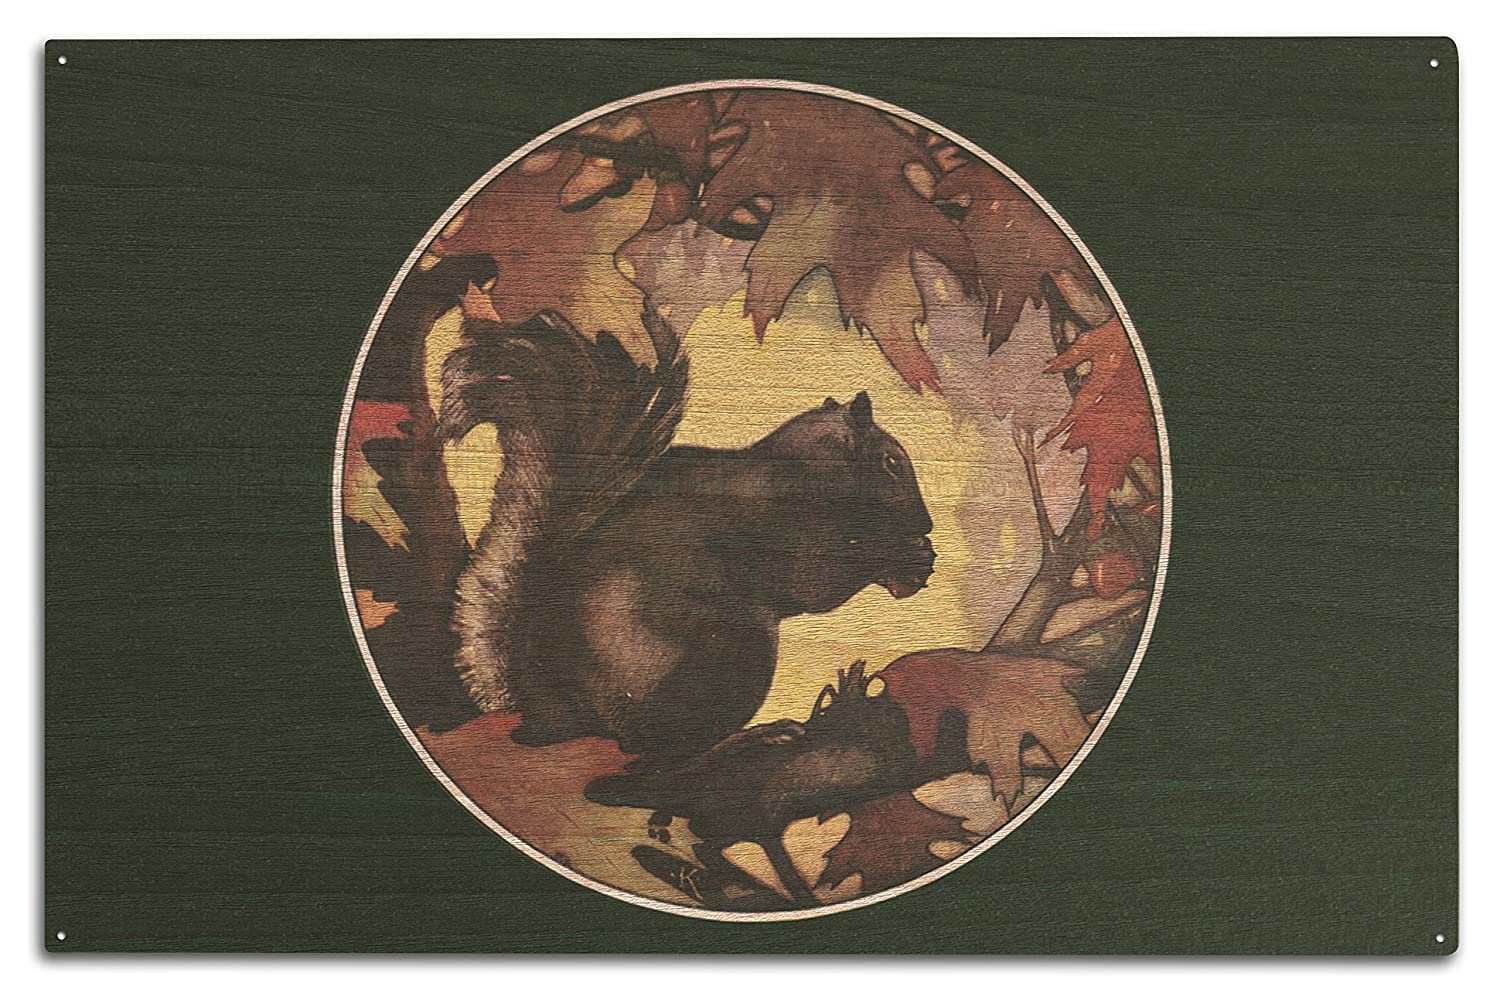 Nature Magazine – View of a Chipmuck in the Woods 10 x 15 Wood Sign LANT-30092-10x15W B07366XK4D  10 x 15 Wood Sign